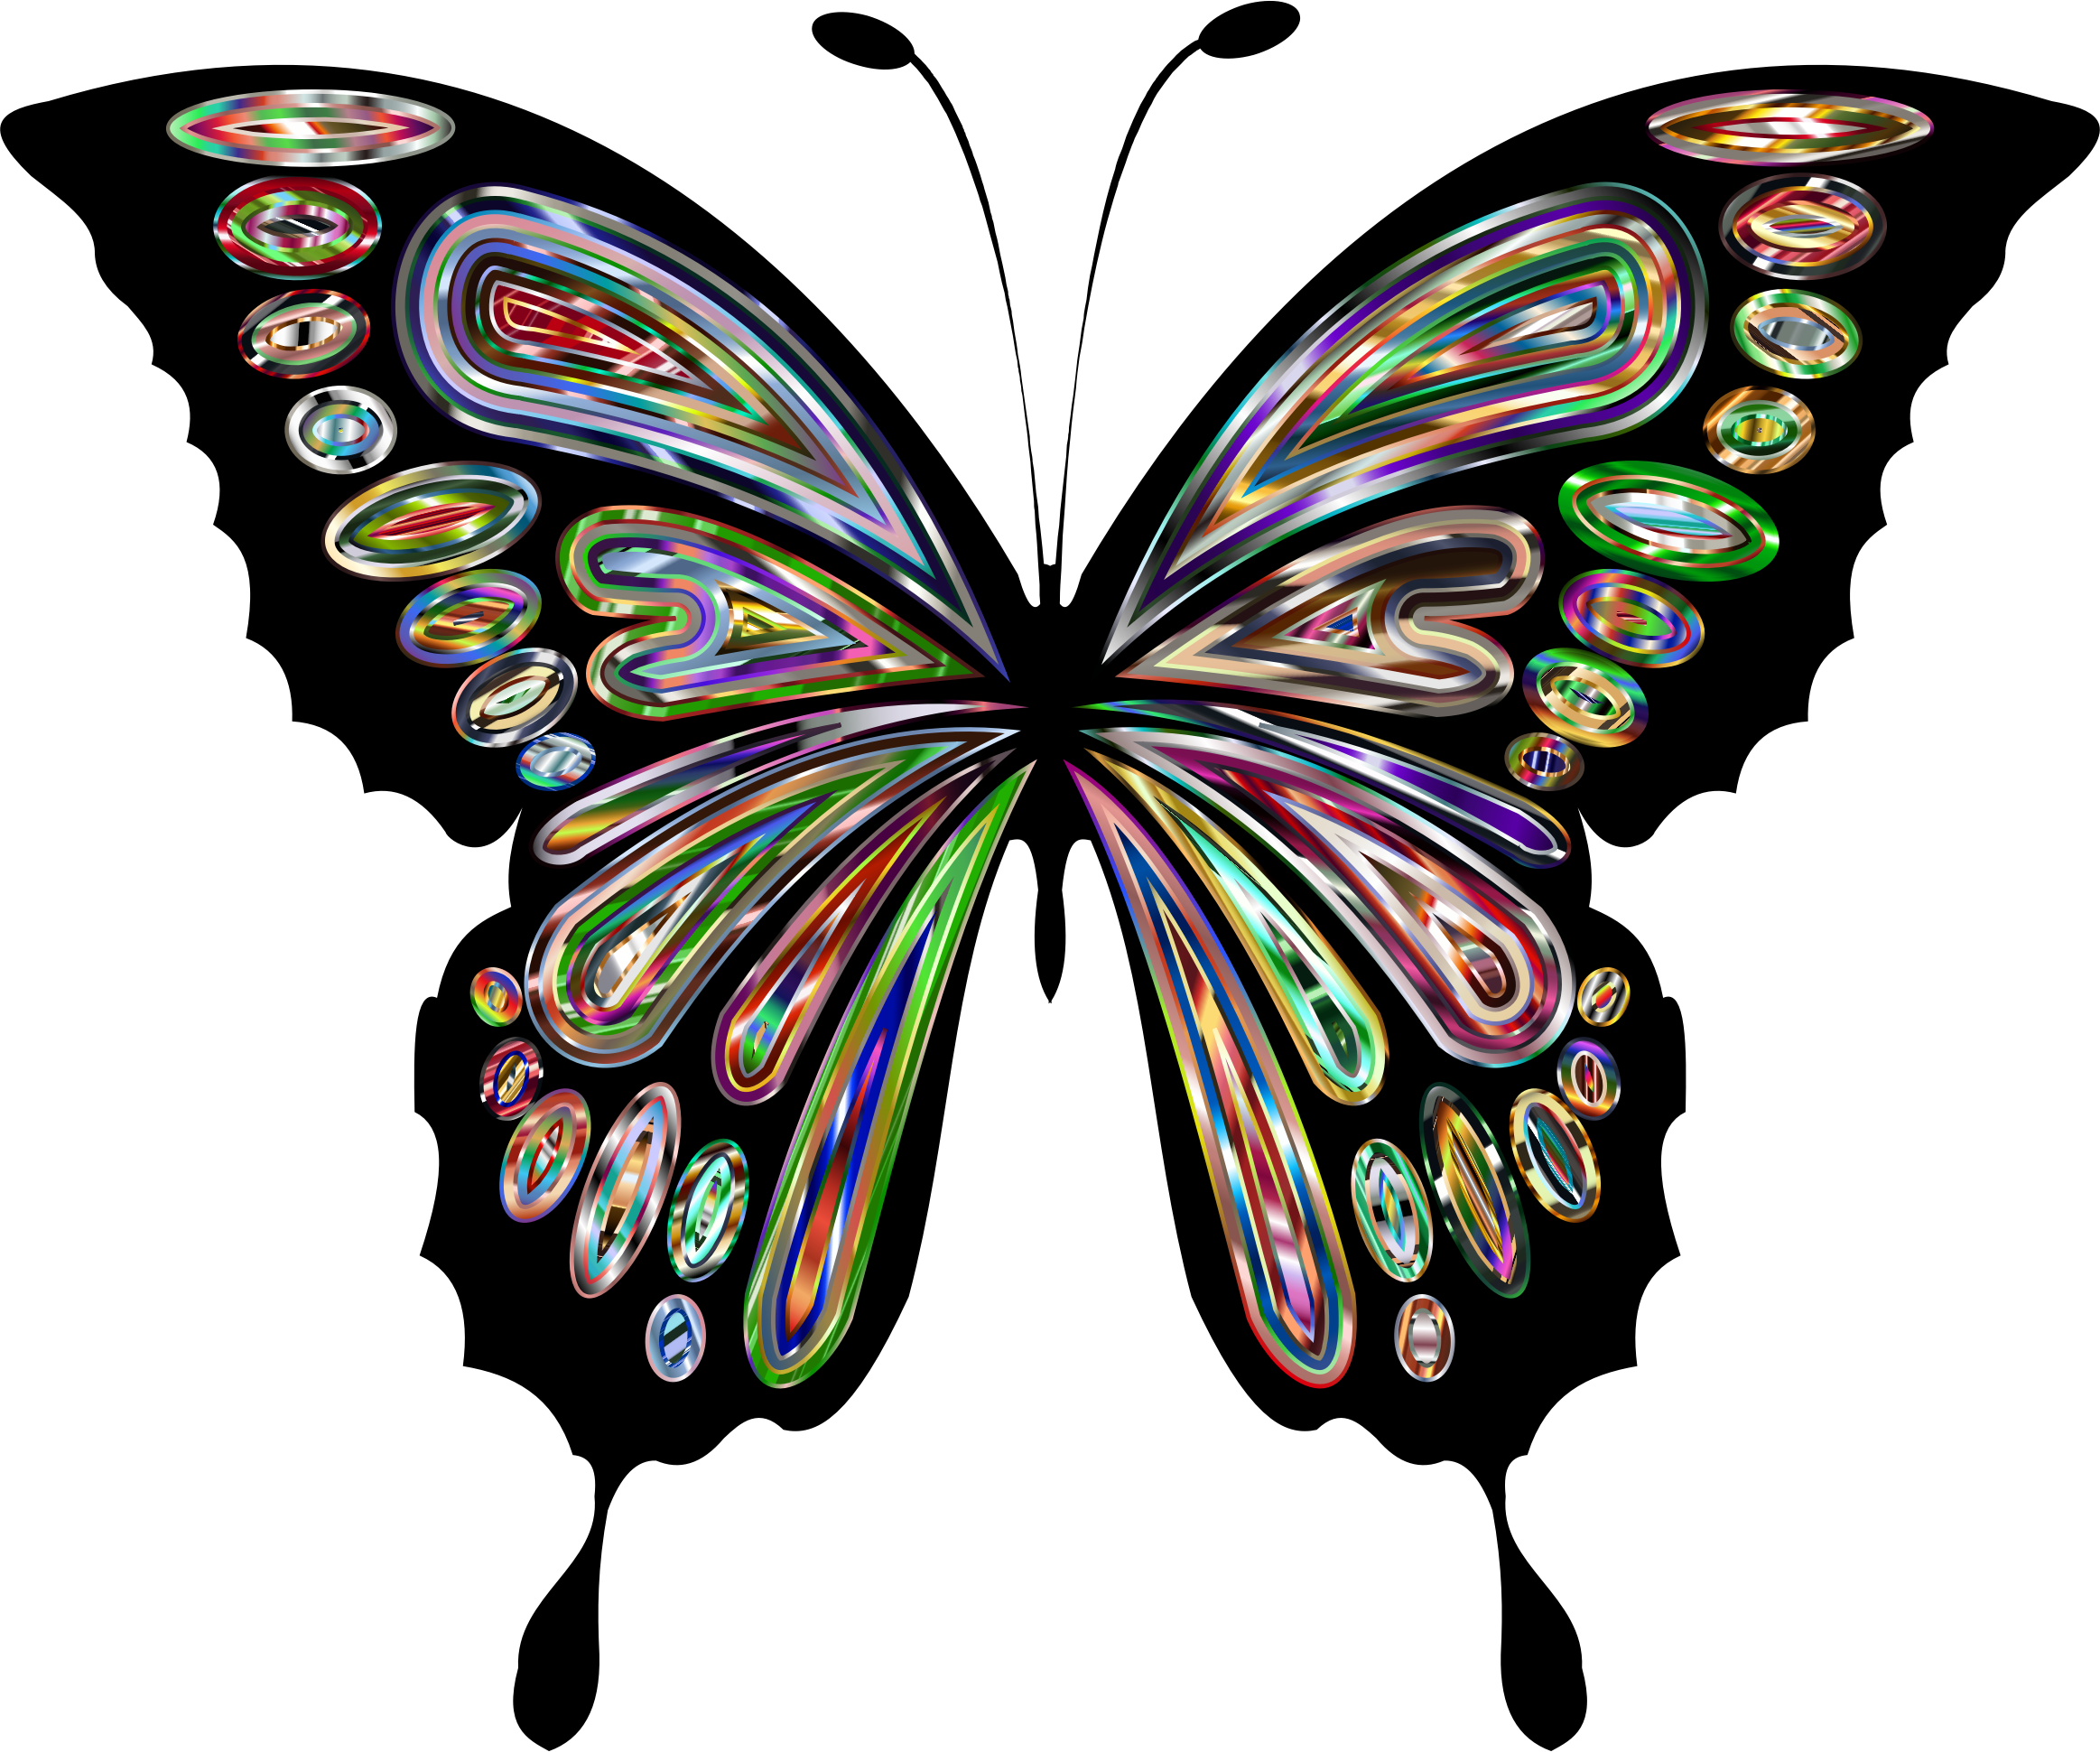 Prismatic Butterfly Remix 11 by GDJ